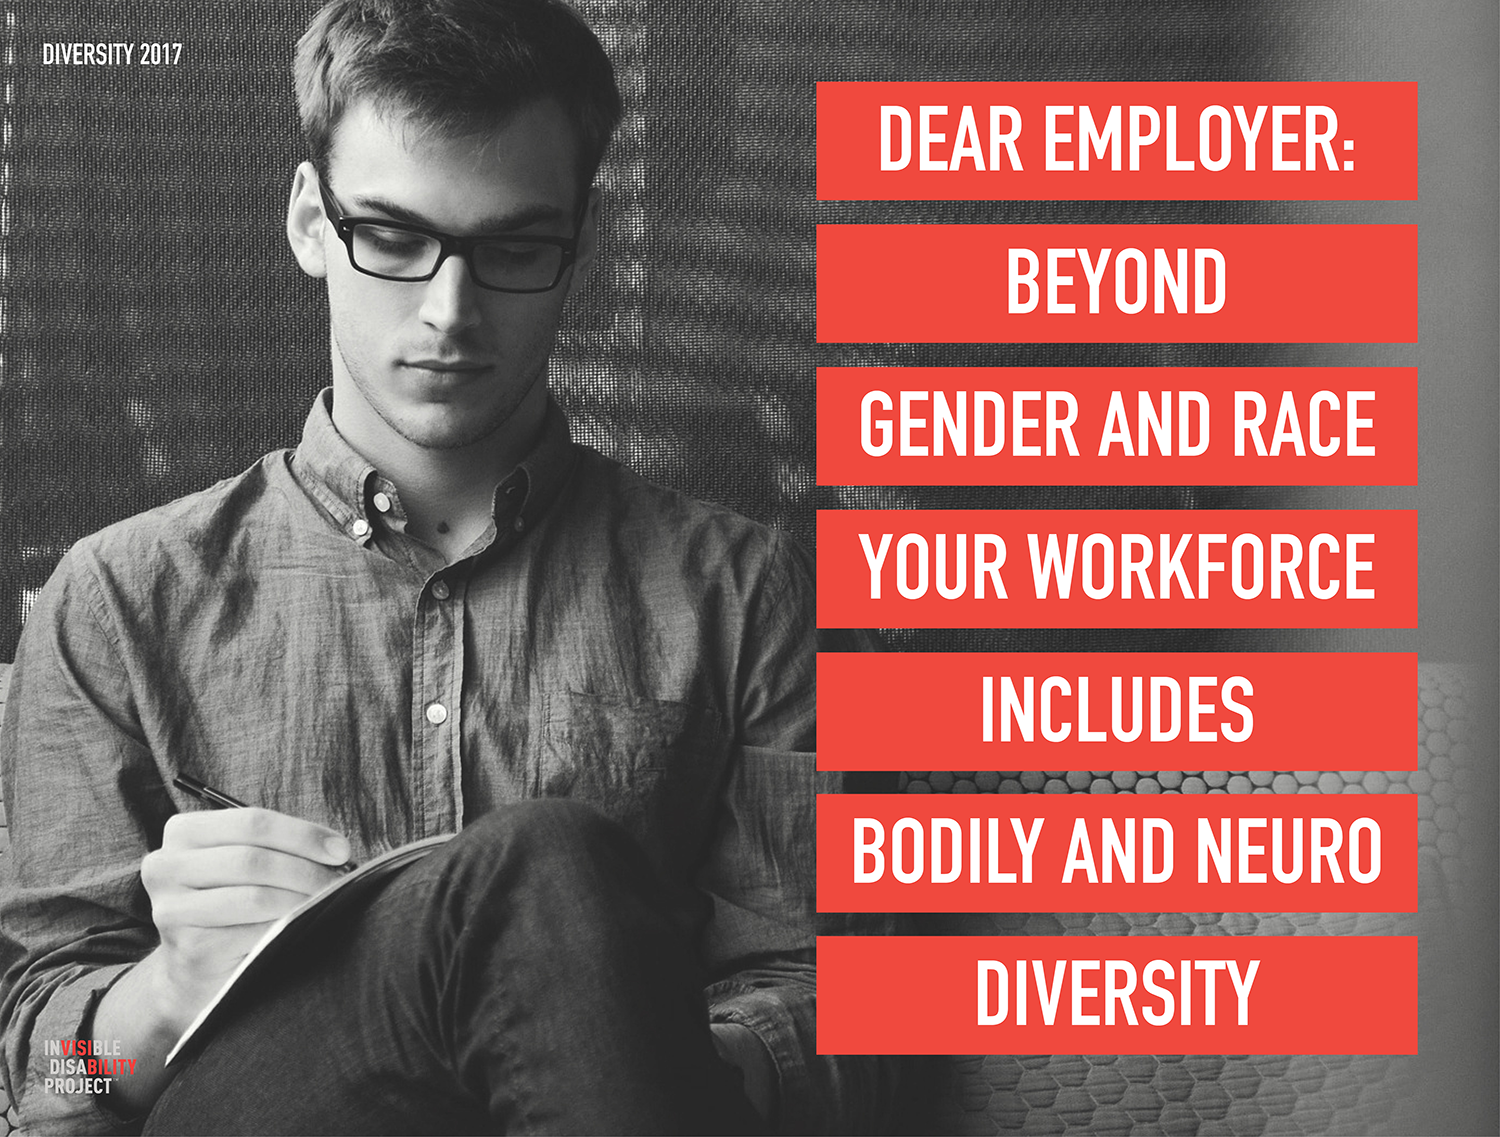 Dear Employer. Beyond gender and race, your workforce includes bodily and neuro diversity.